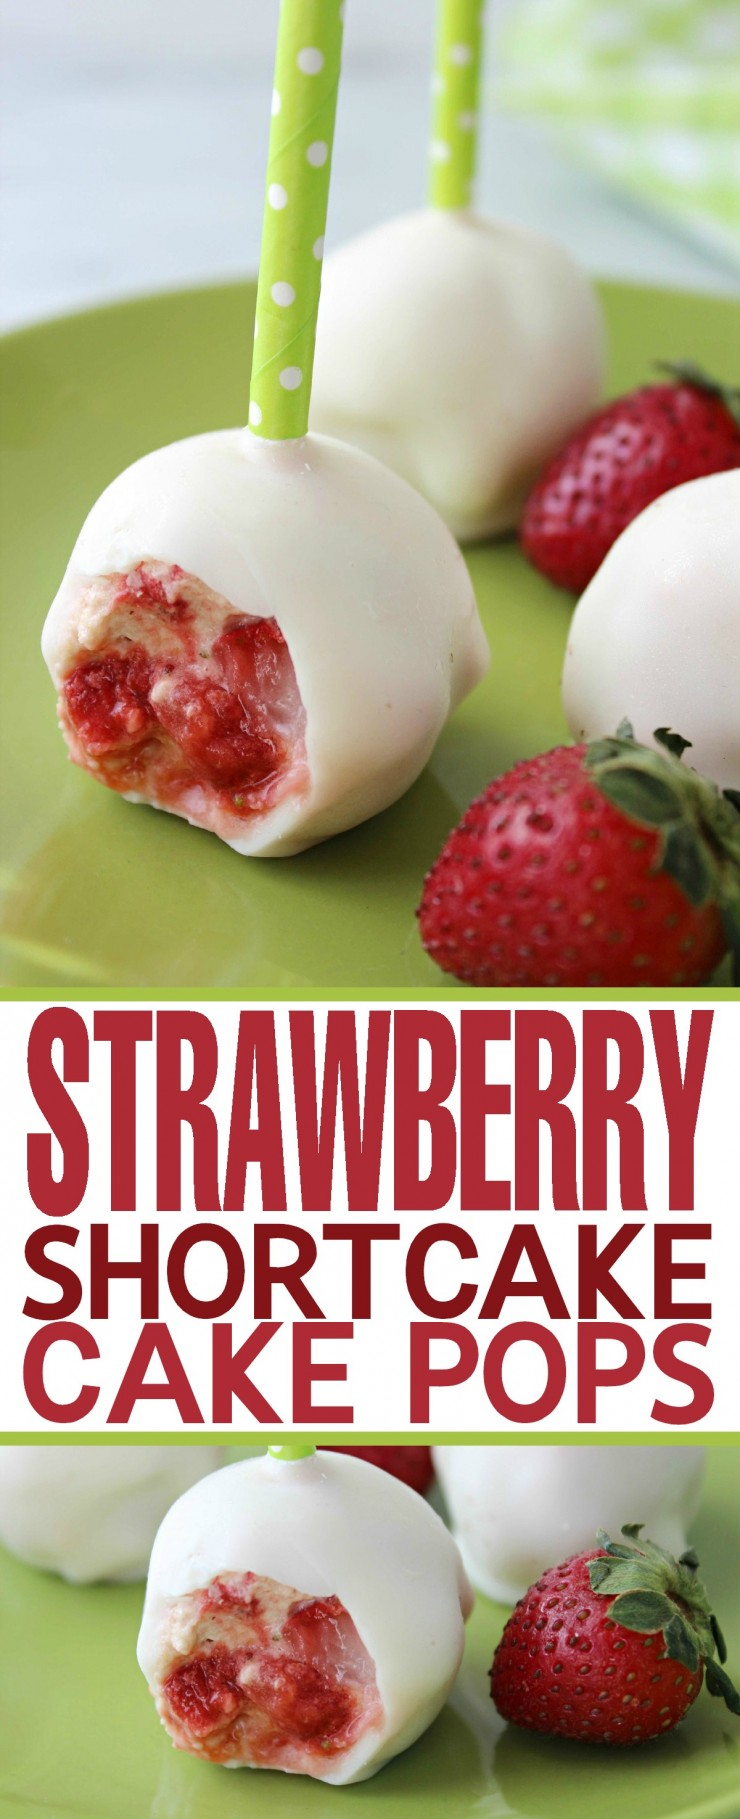 Strawberry Shortcake Cake Pops - Life Love Liz